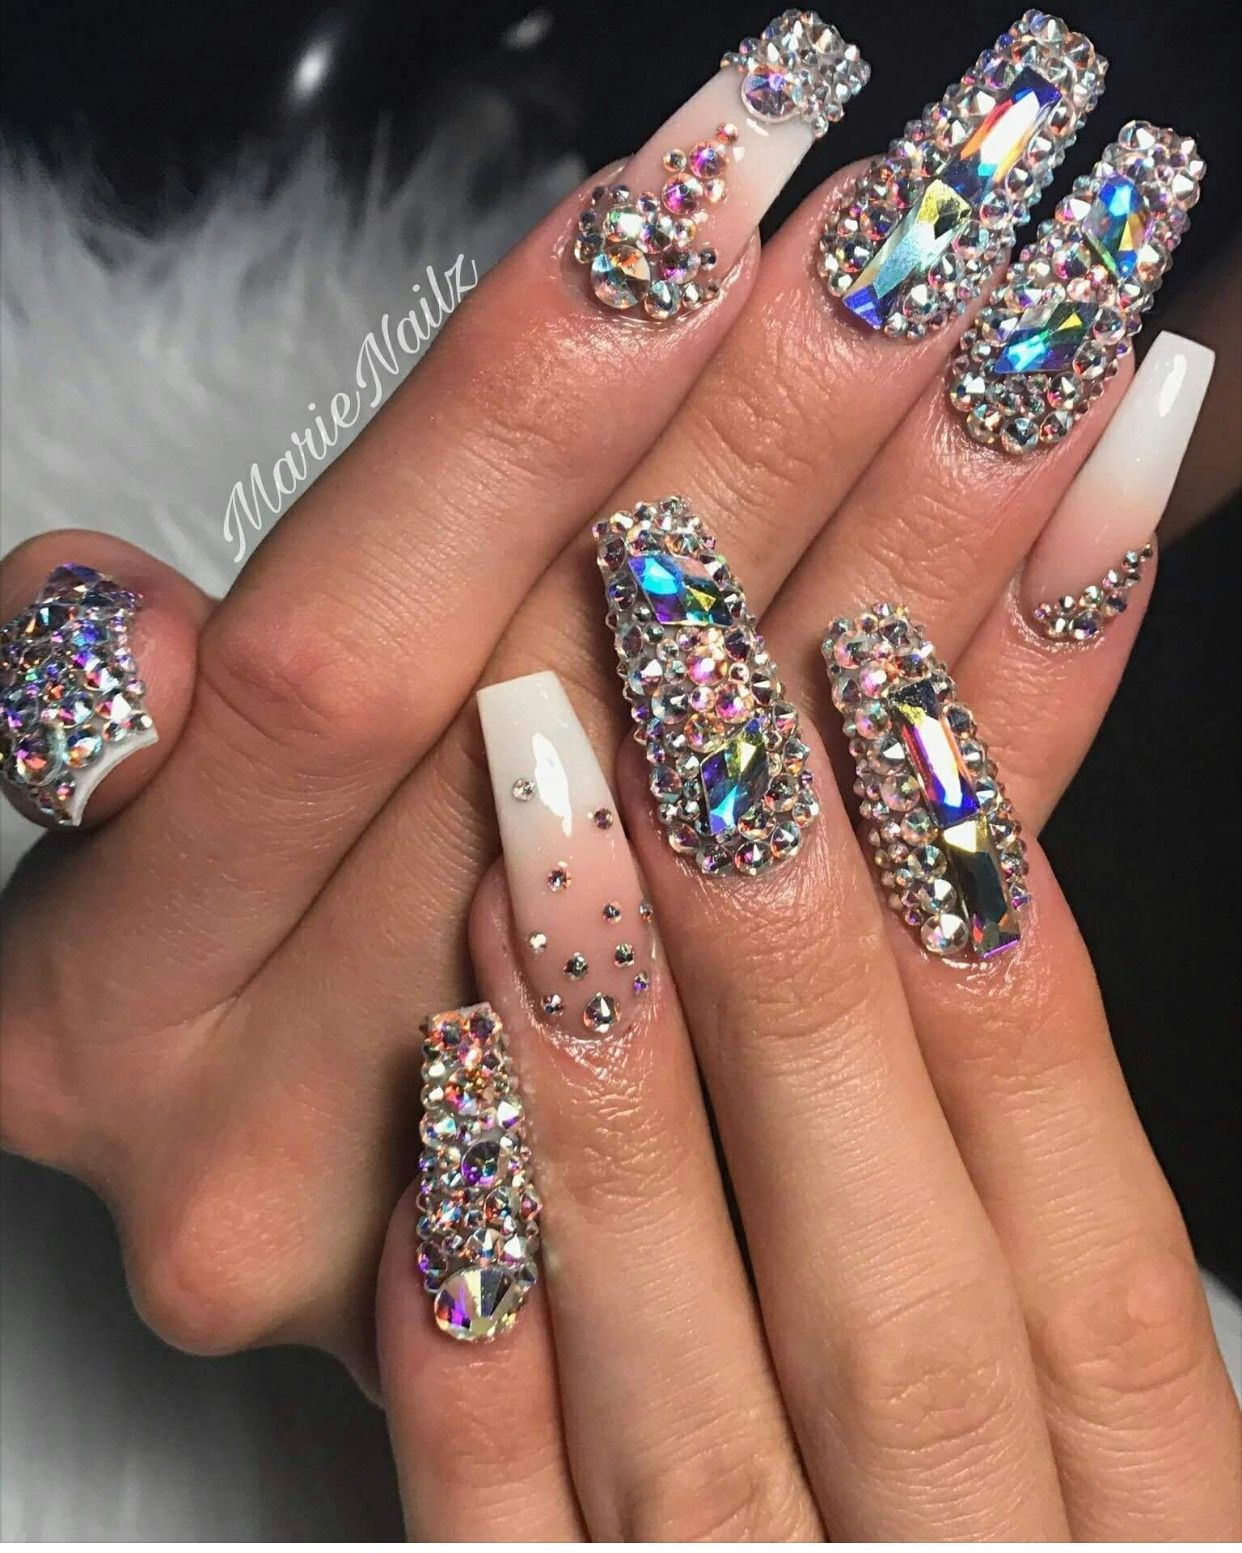 Pin by LaToya Gordon on ☆PRETTY NAIL SWAG☆ | Pinterest | Nail ...